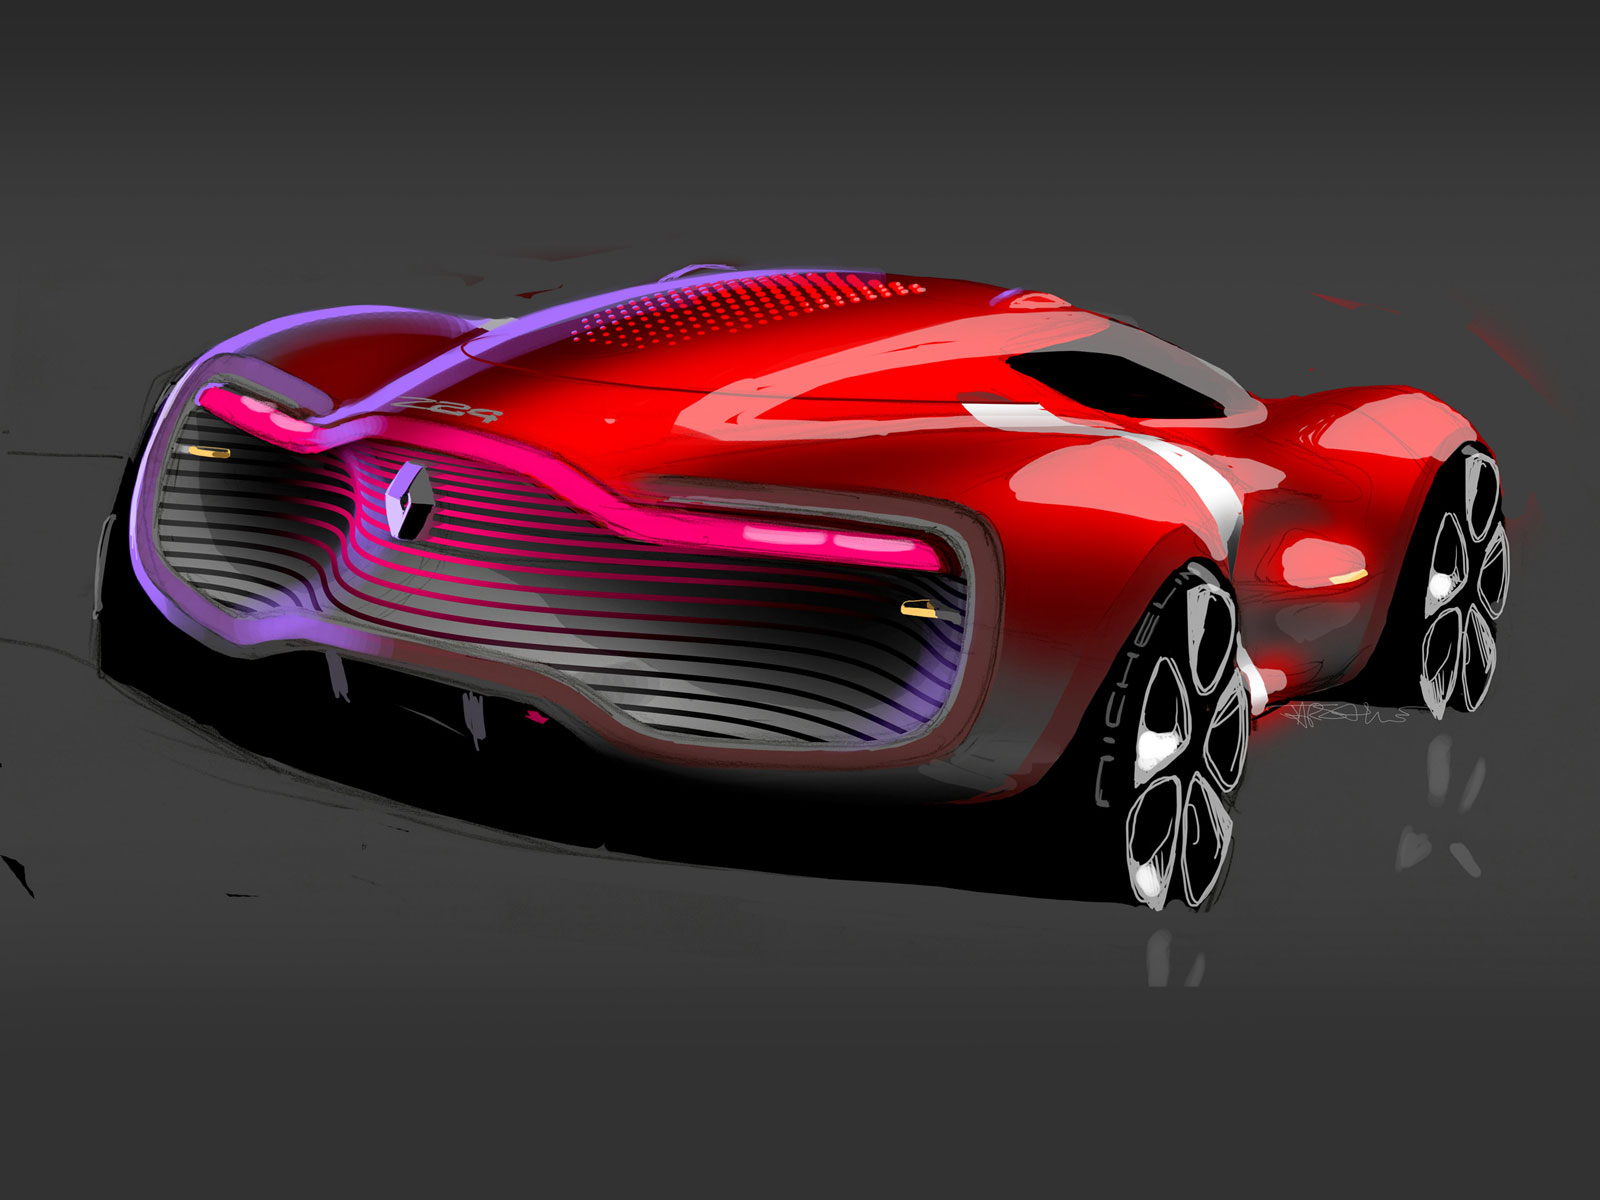 renault dezir concept design sketch   car body design